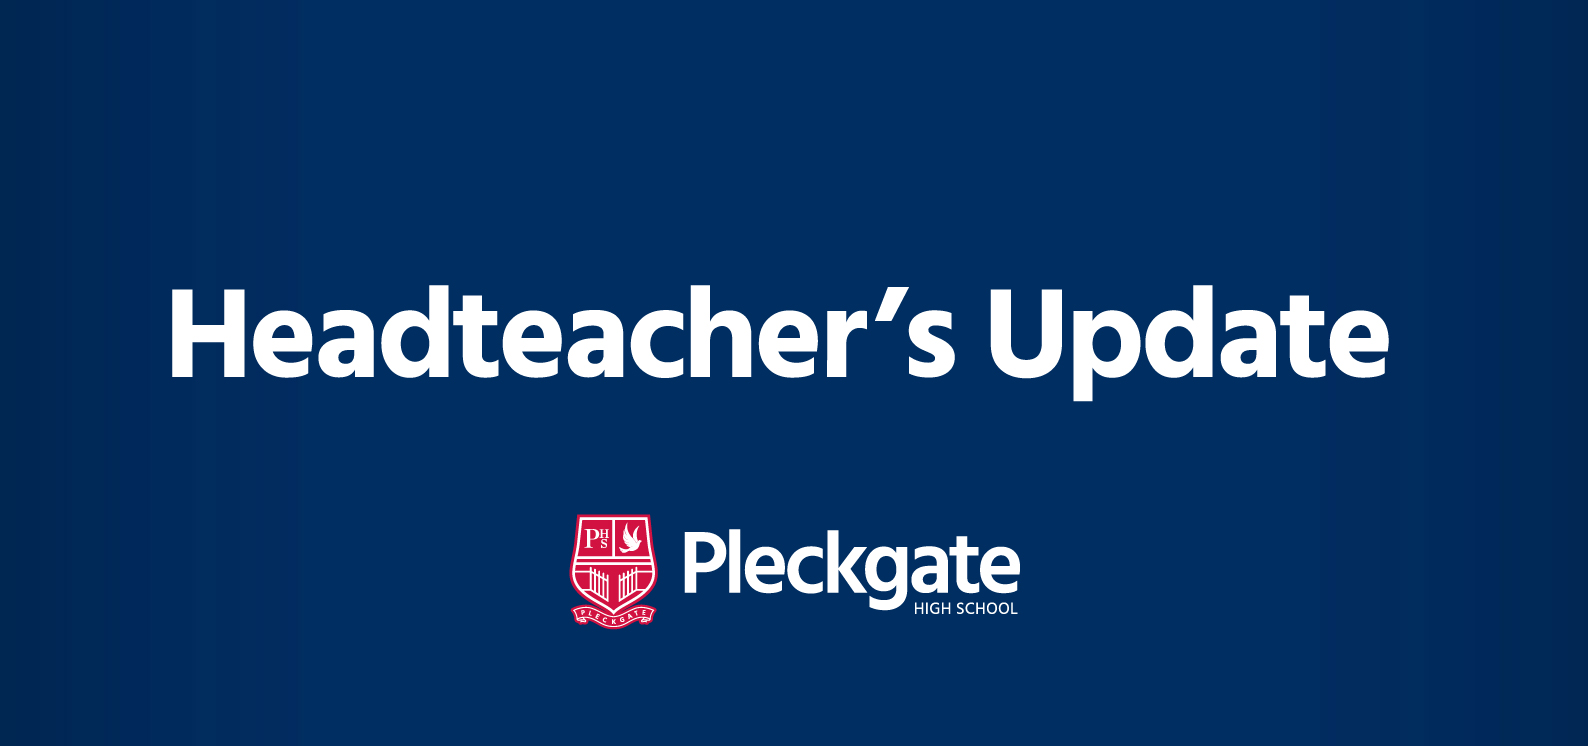 Headteacher's Update – June 2018